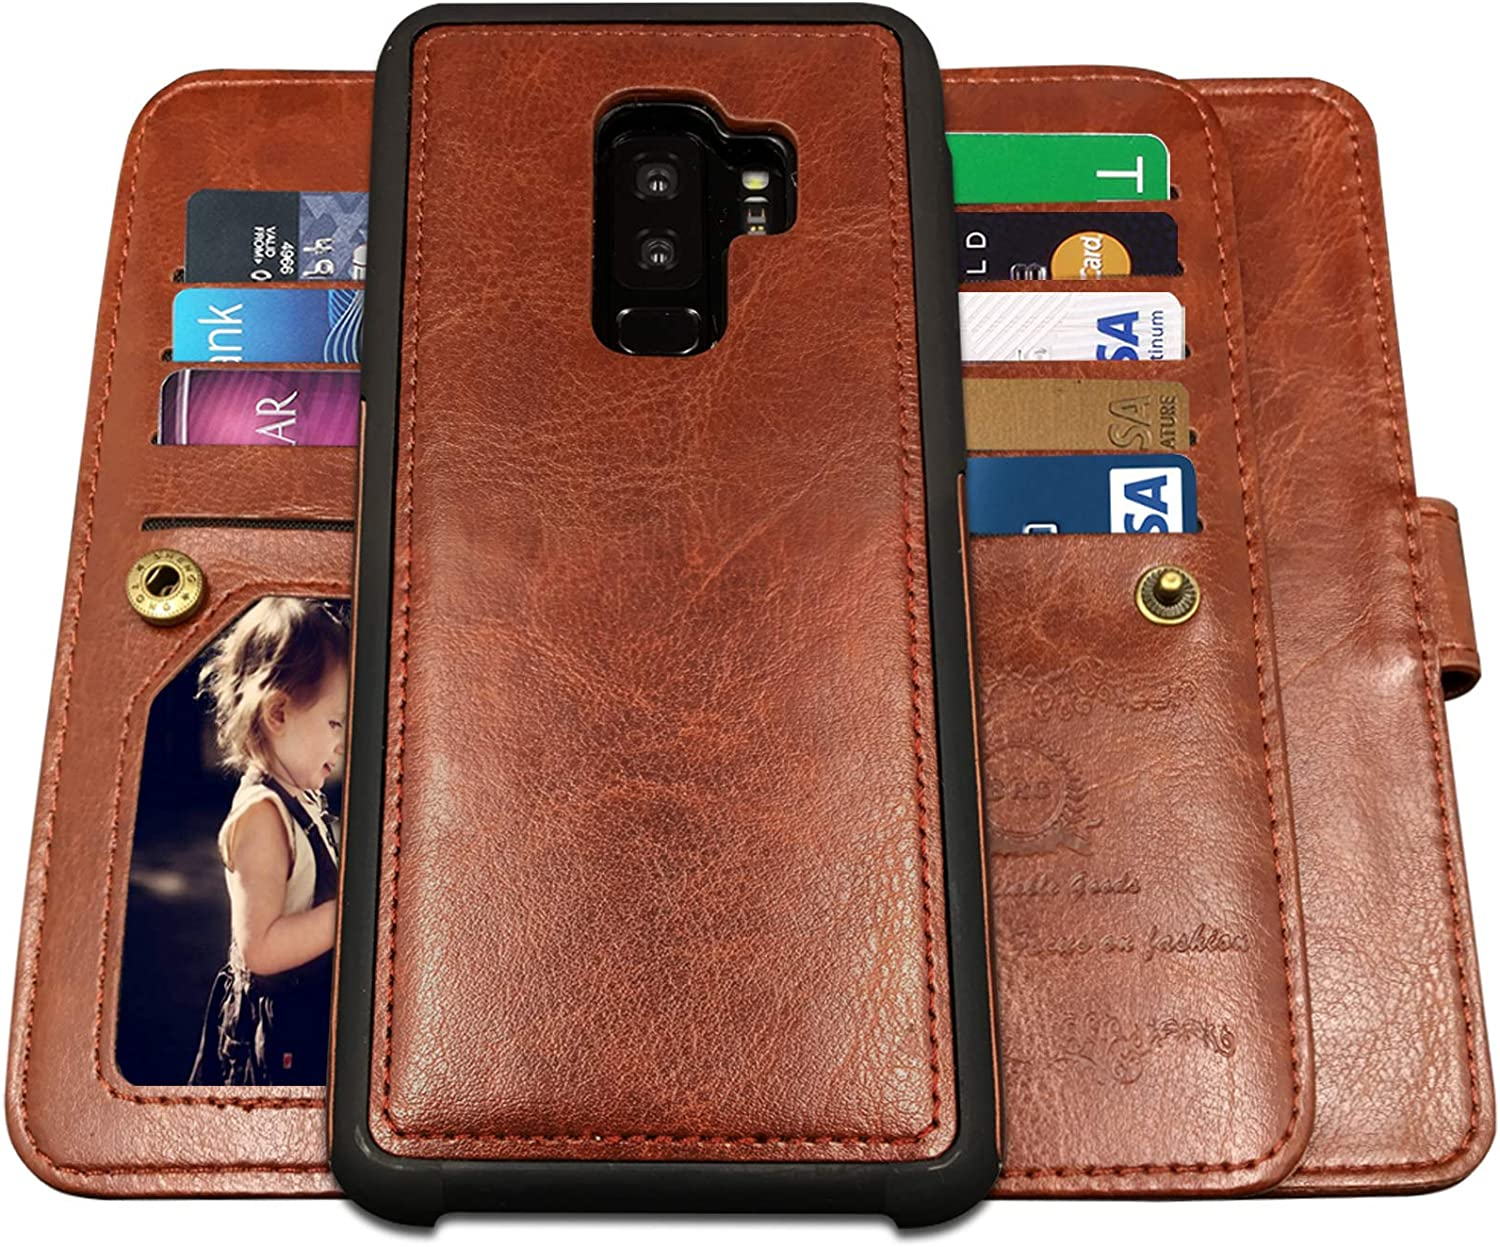 Galaxy S9 Plus Cases,Magnetic Detachable Lanyard Wallet Case with [8 Card Slots+1 Photo Window][Kickstand] for Galaxy S9 Plus, CASEOWL 2 in 1 Premium Leather Removable TPU Case(Brown)